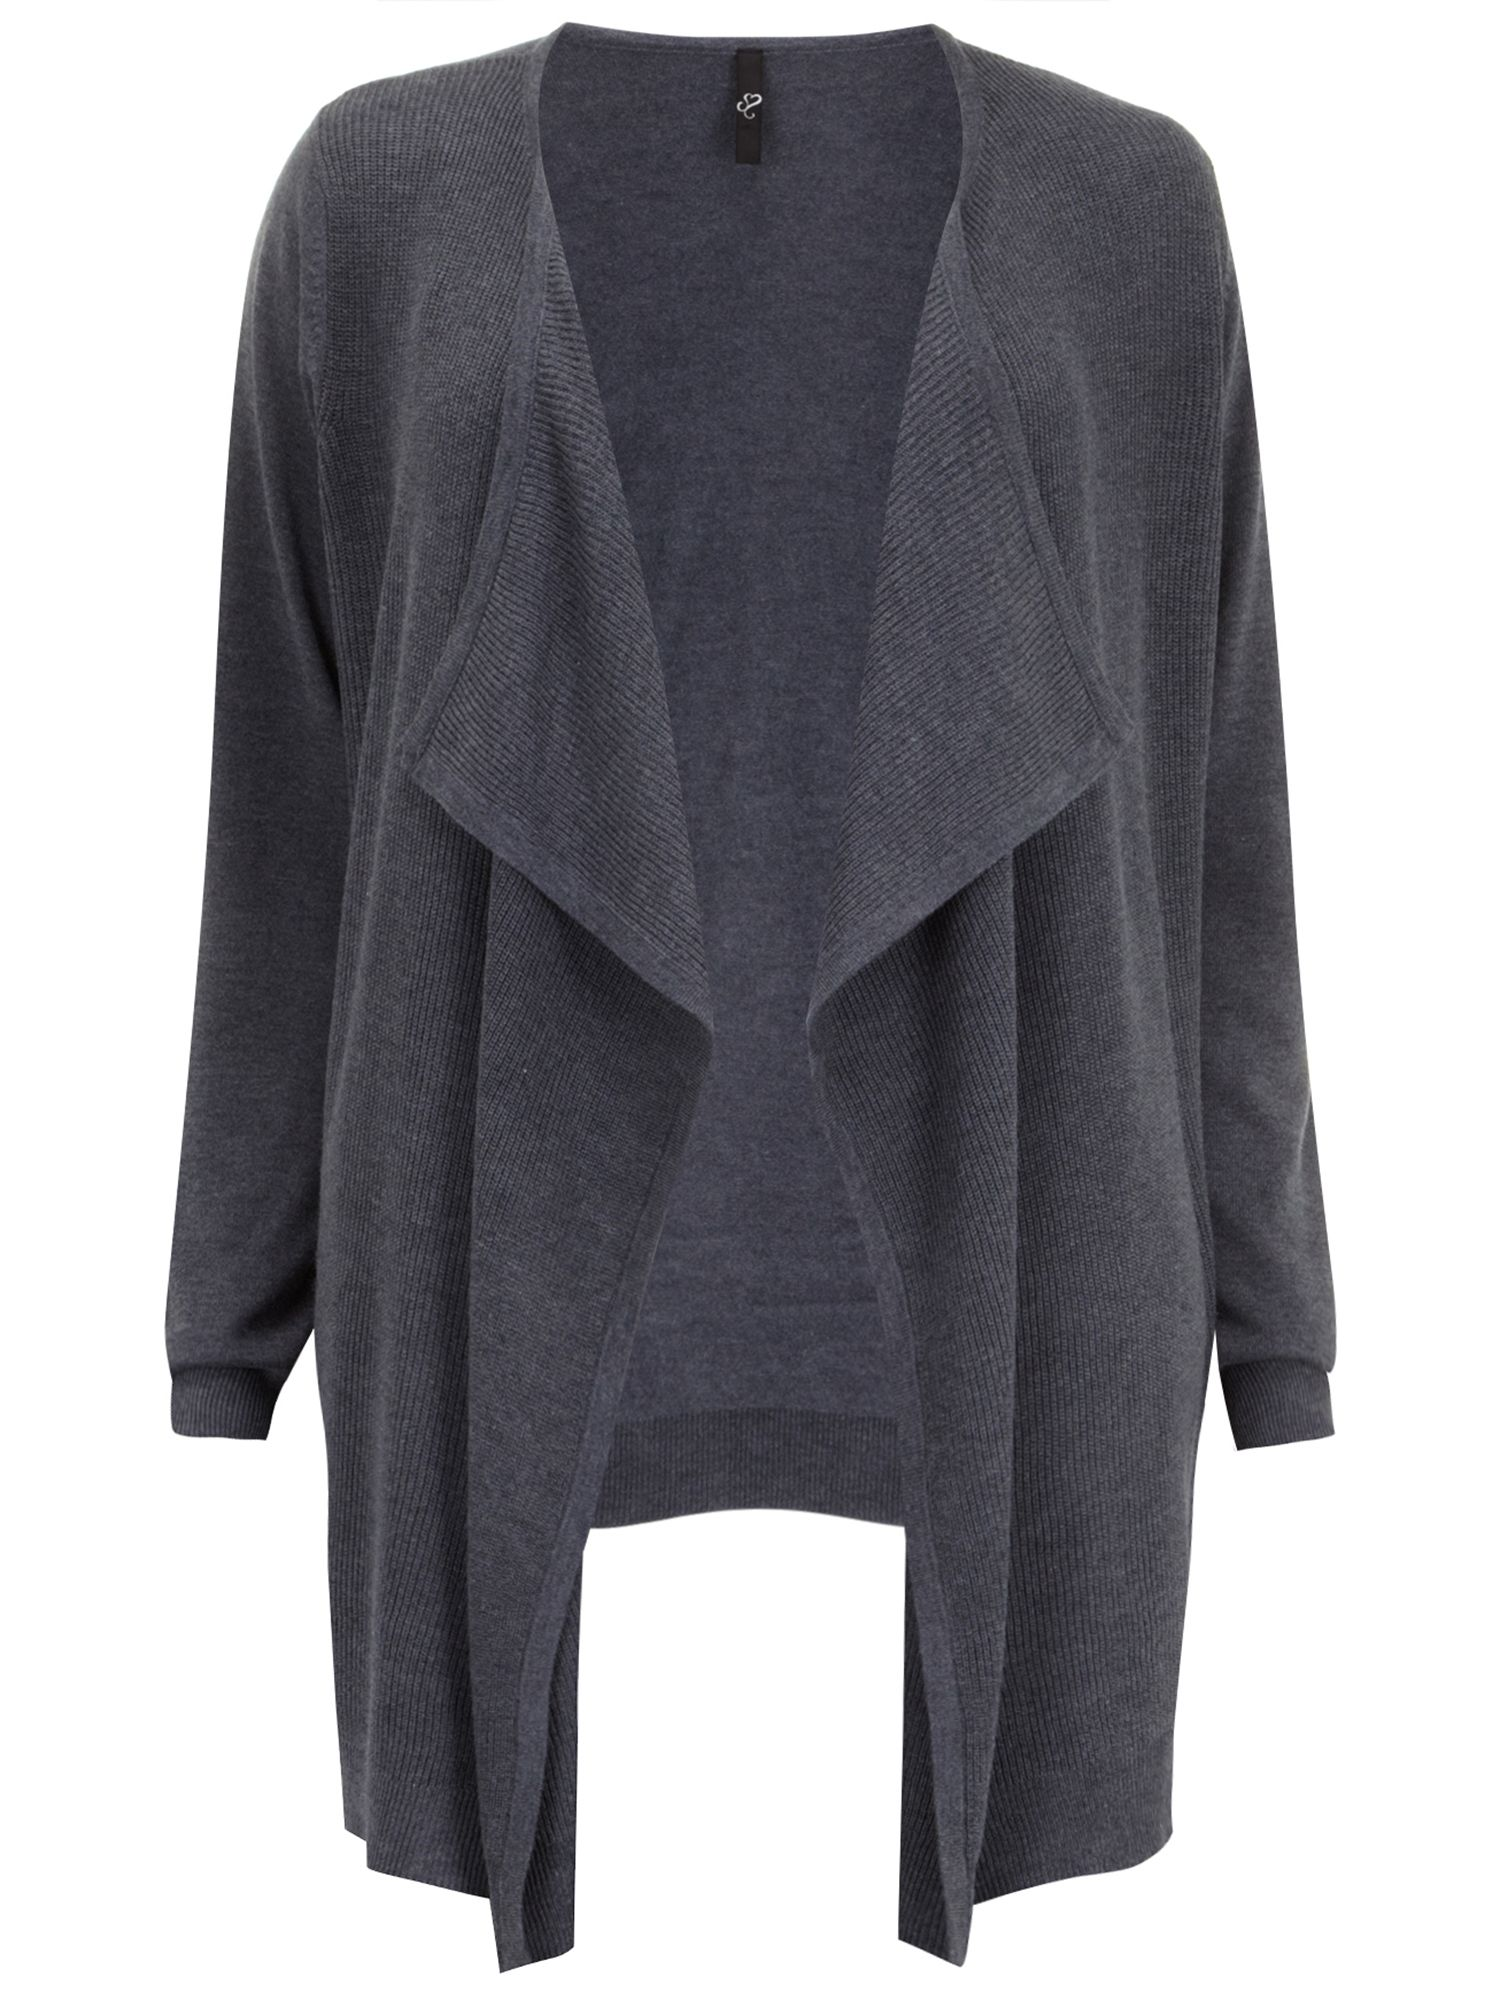 Grey waterfall cardigan